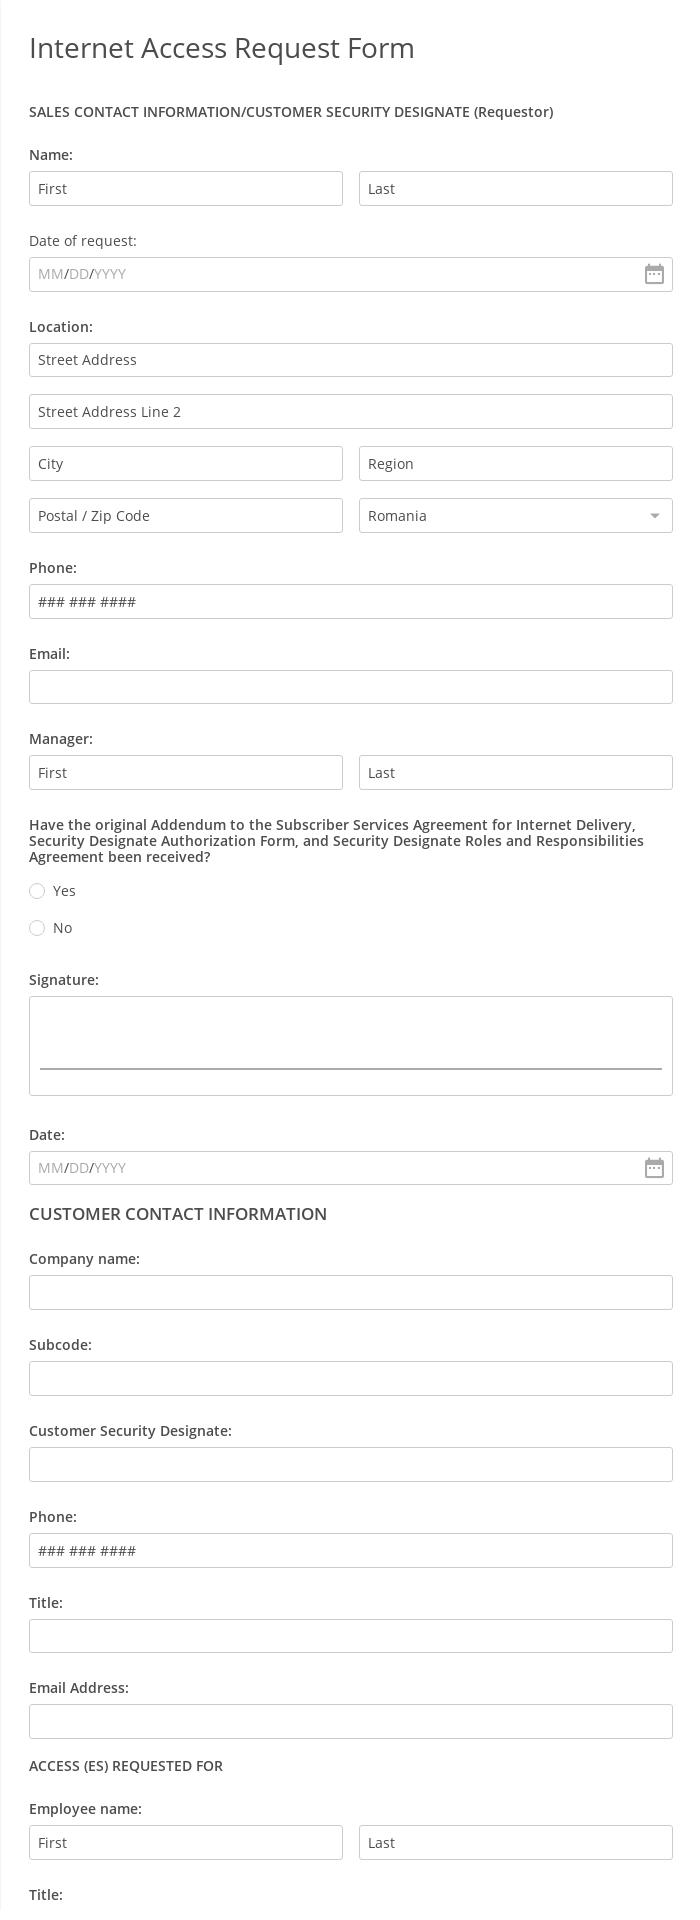 Internet Access Request Form